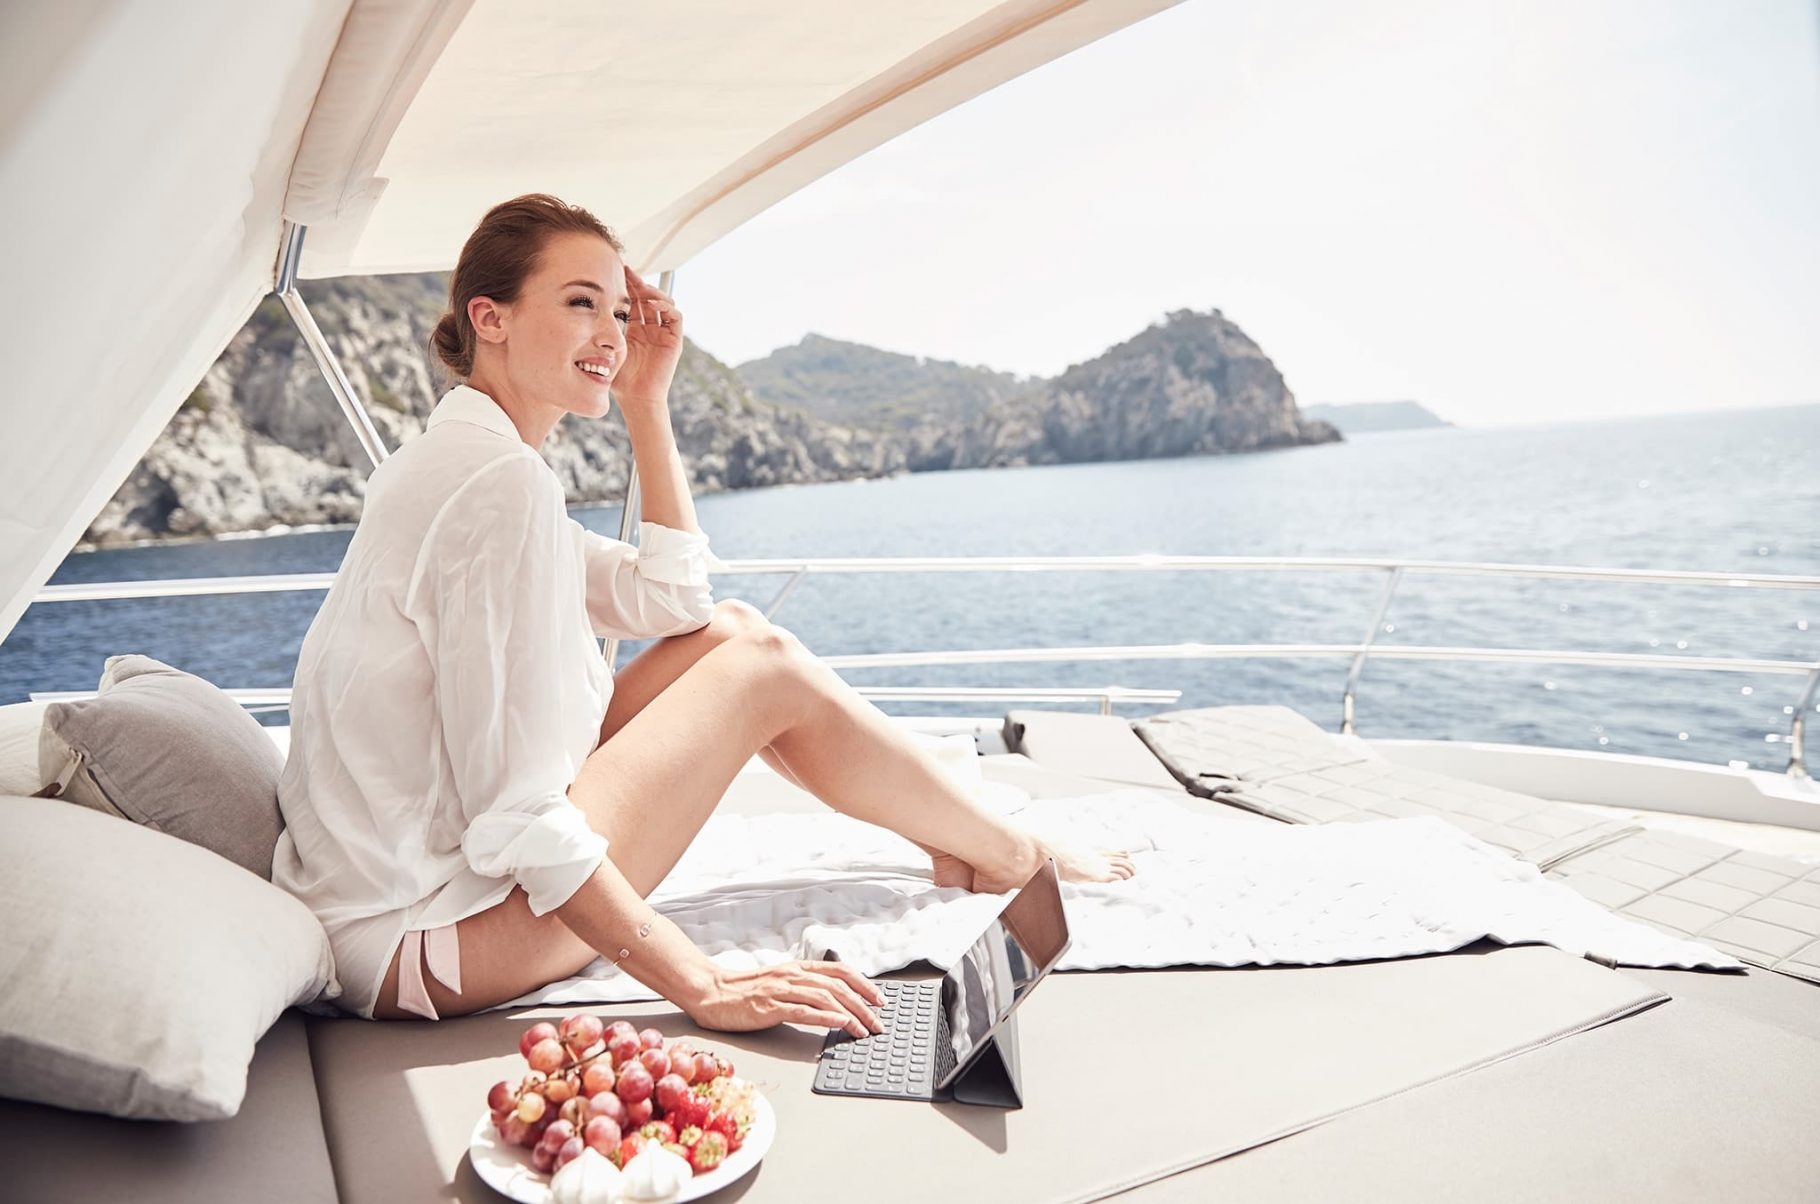 A woman using a tablet on the deck of a yacht